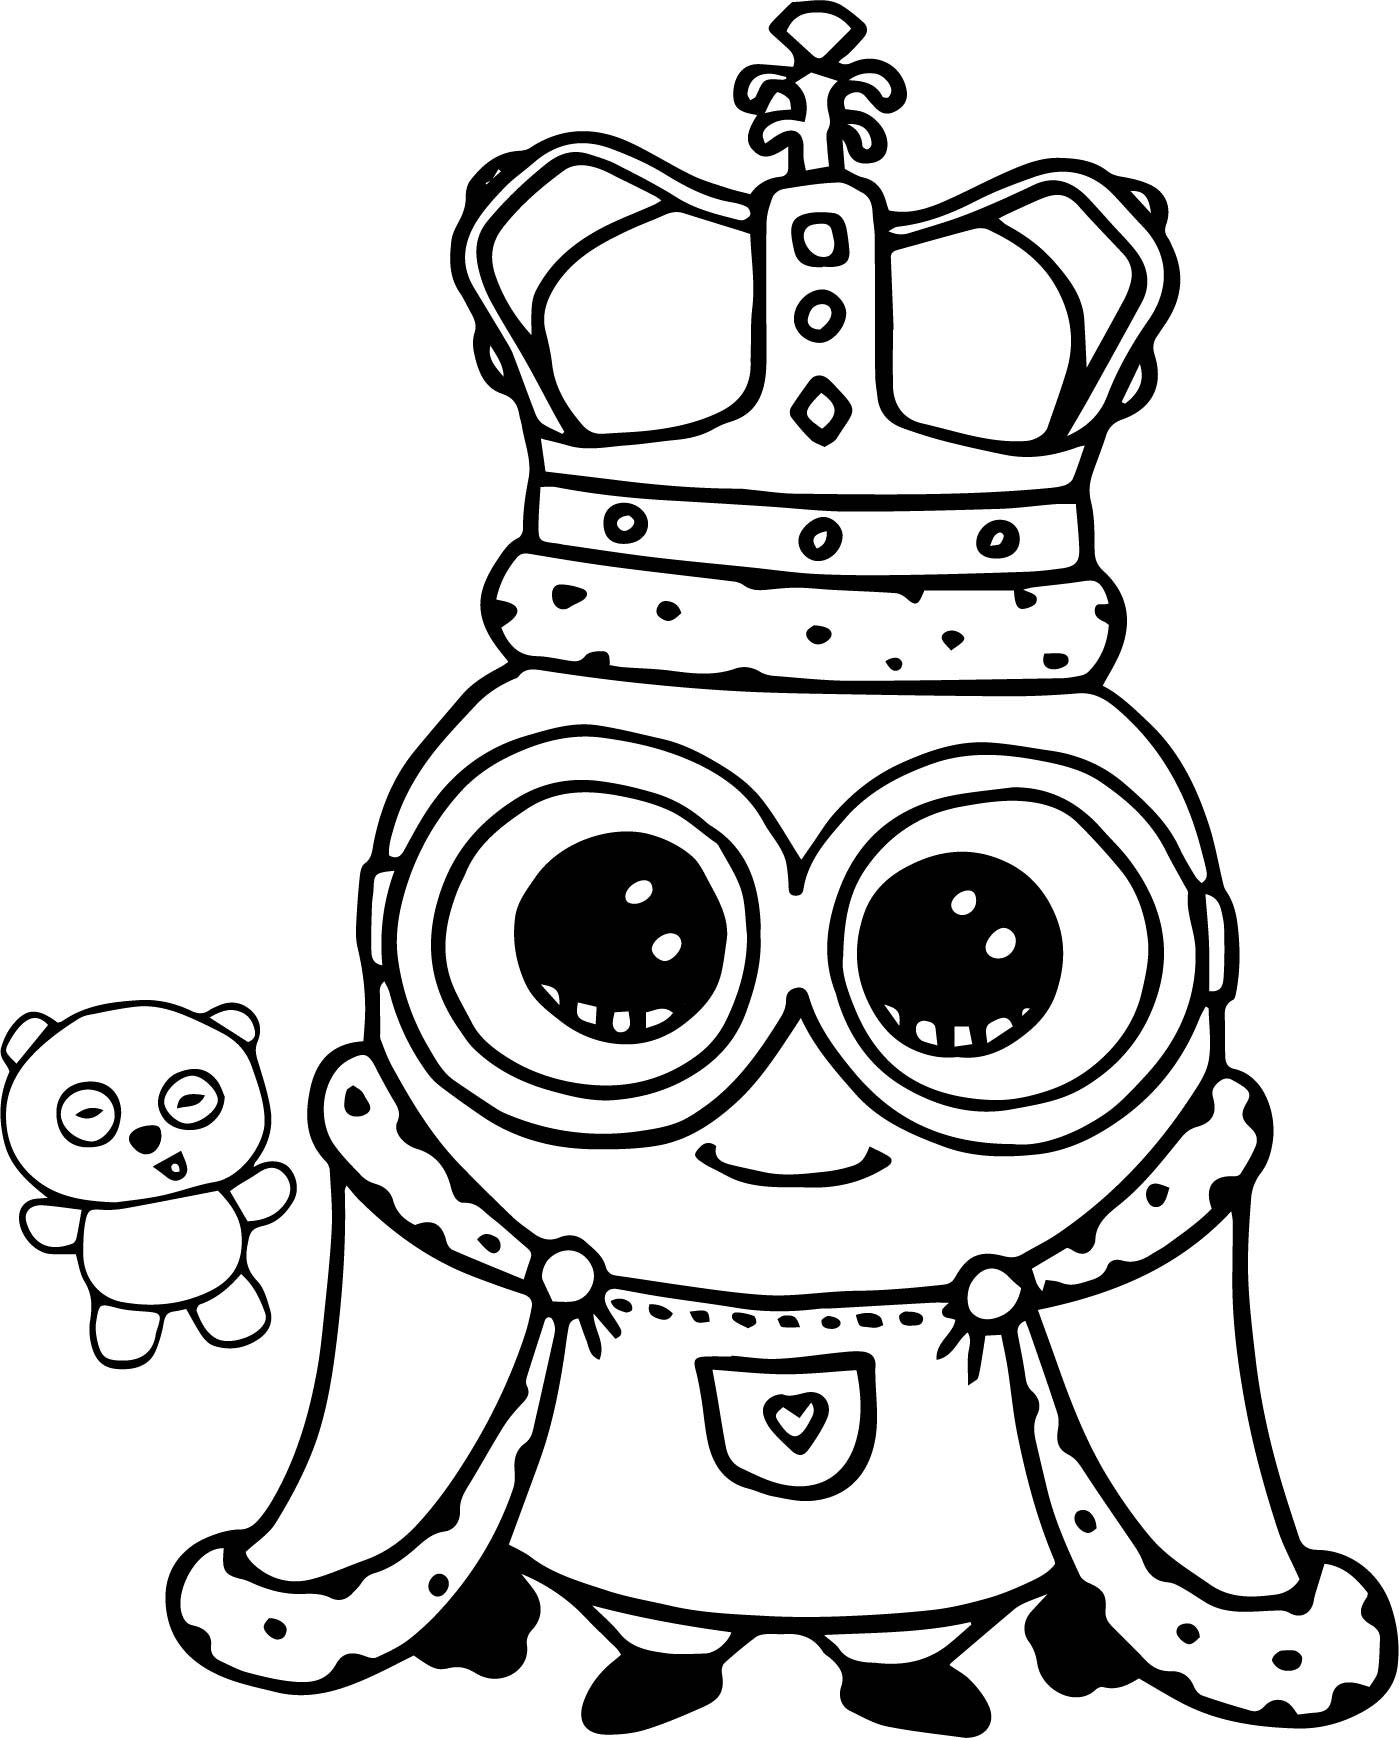 minion colouring page coloring pages minions fireman coloring pages for kids colouring page minion